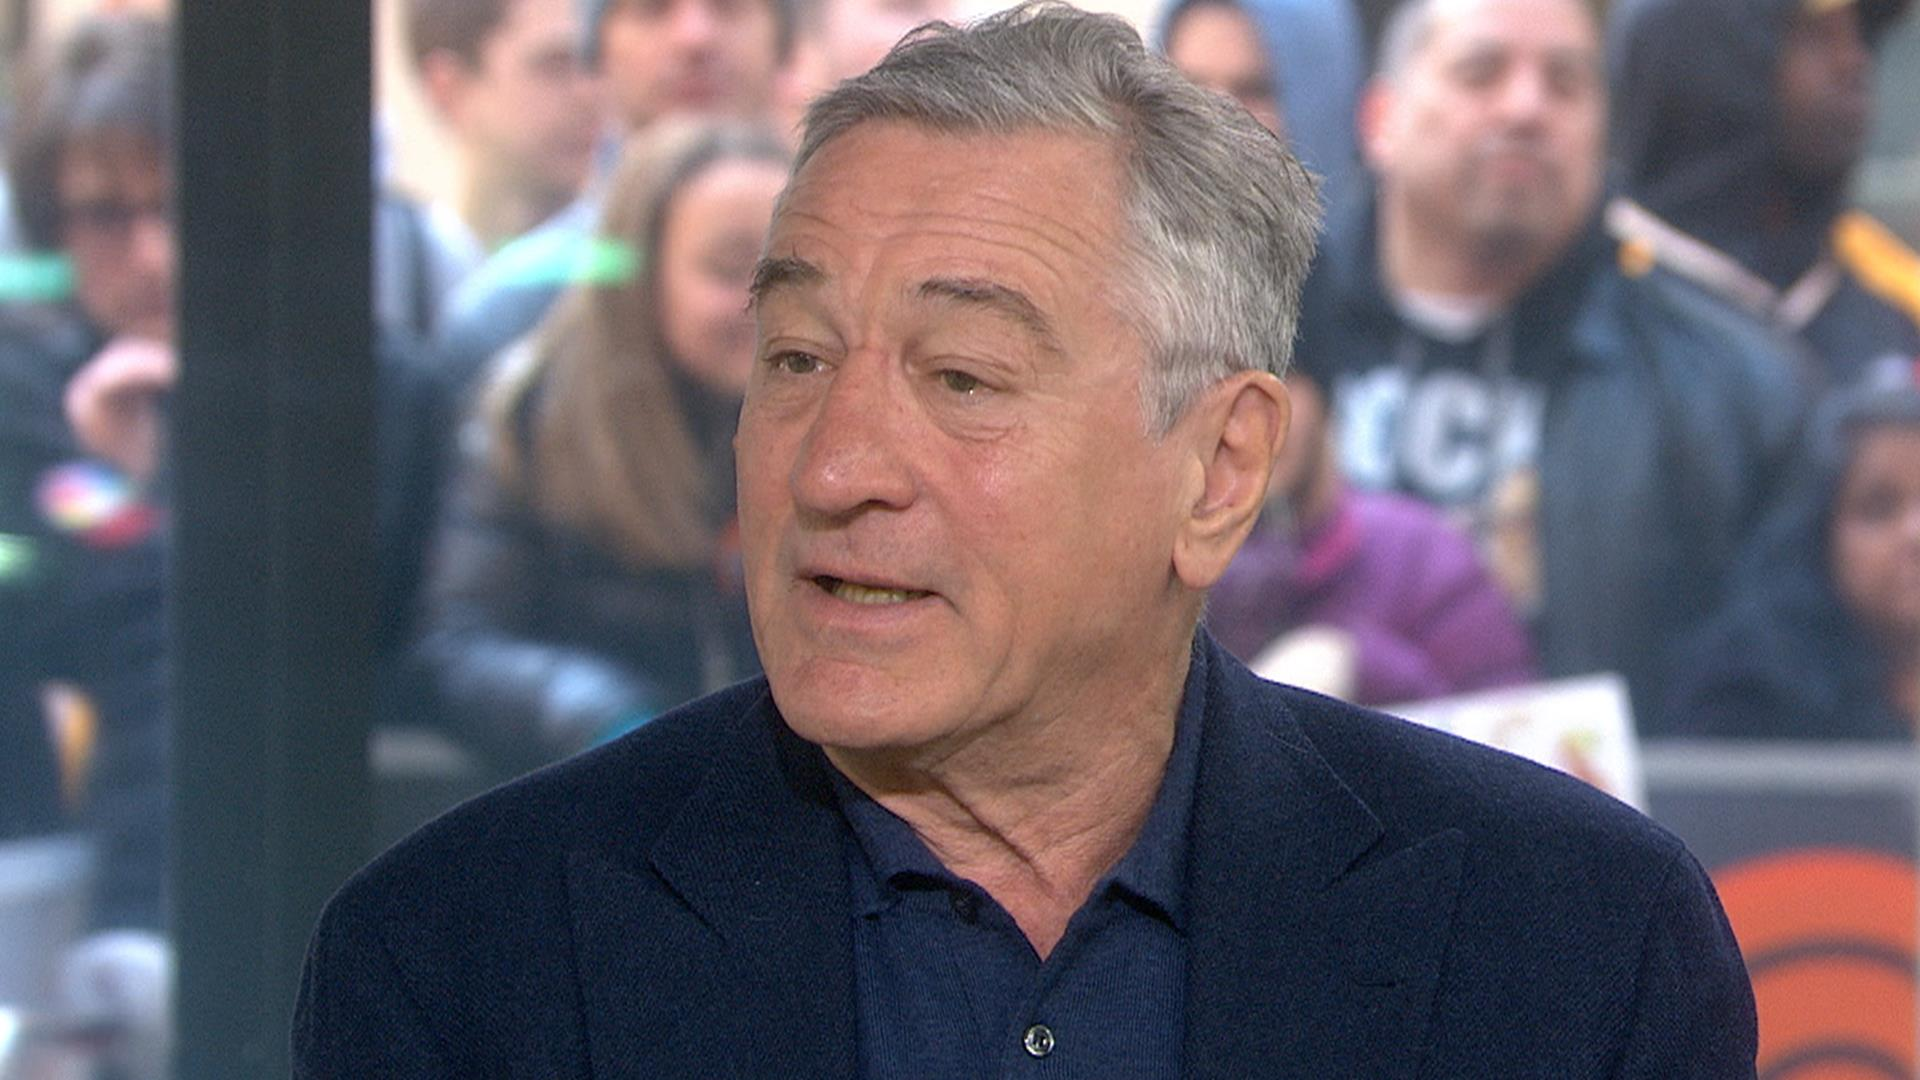 Robert De Niro on anti...